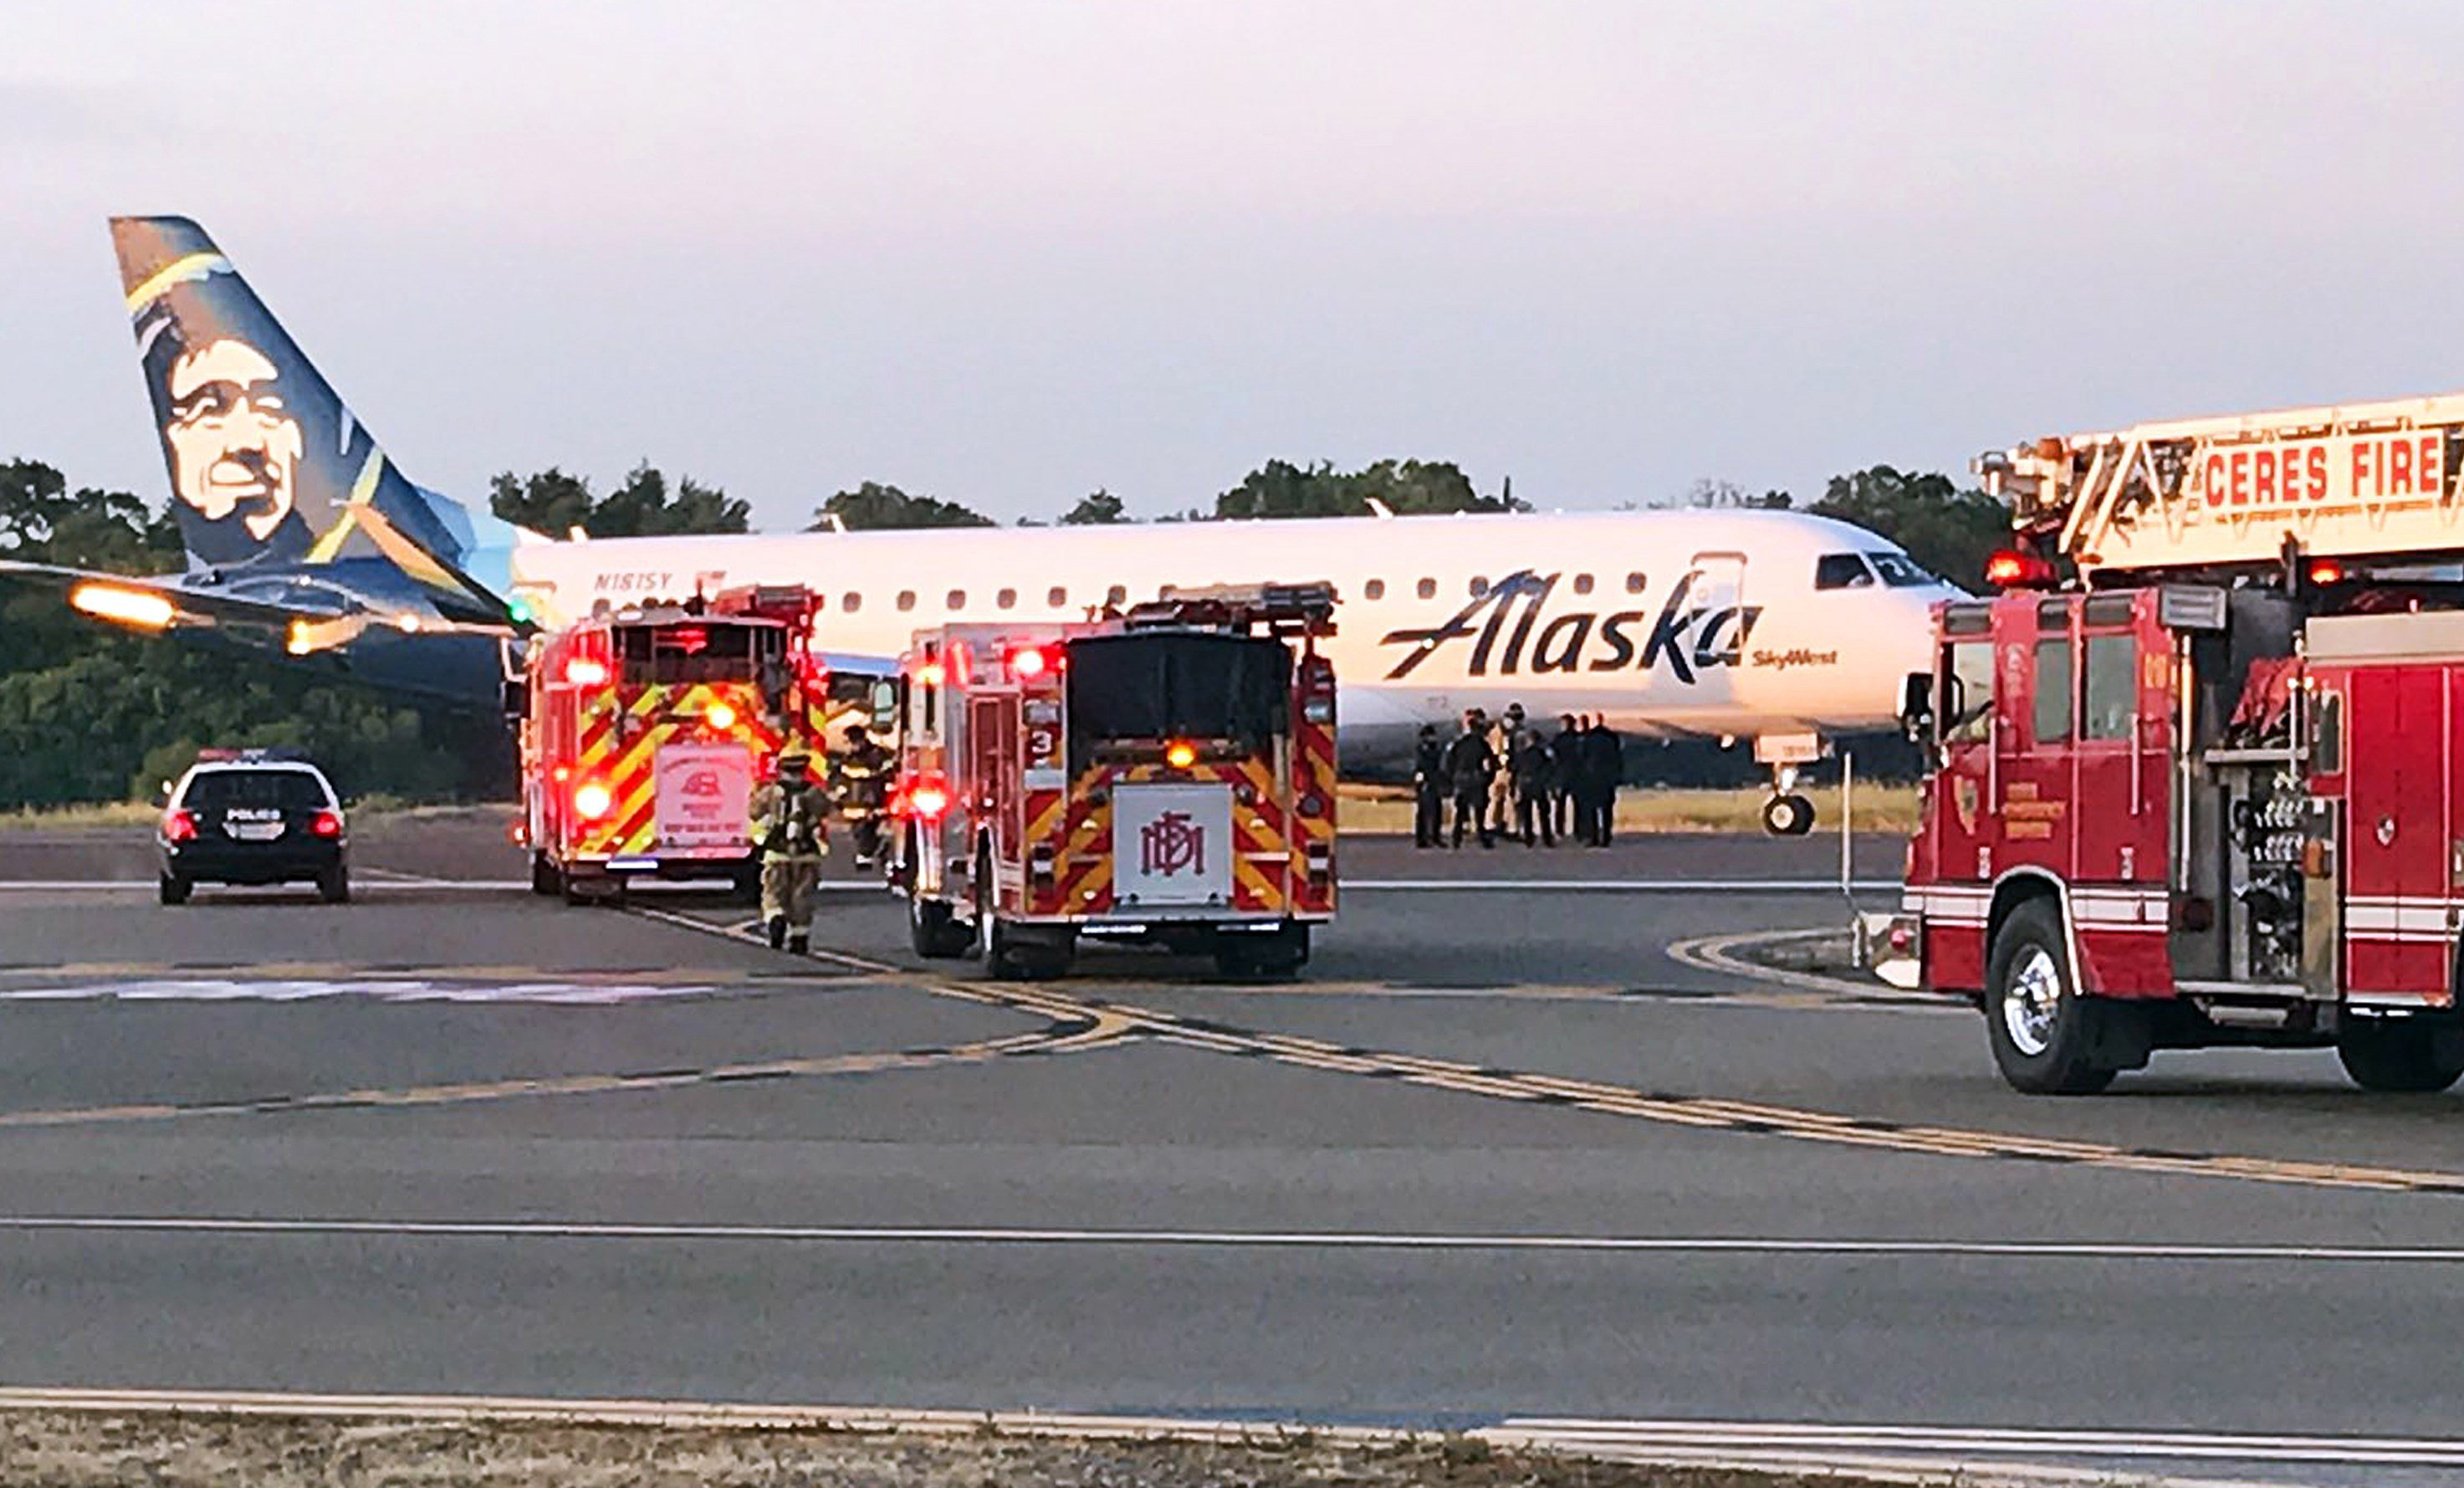 This photo provided by the Modesto, Calif., Fire Department shows an Alaska Airlines Embraer 175 twin jet after it made an unscheduled landing at the Modesto airport Sunday, April 9, 2017. (Modesto Fire Department via AP)